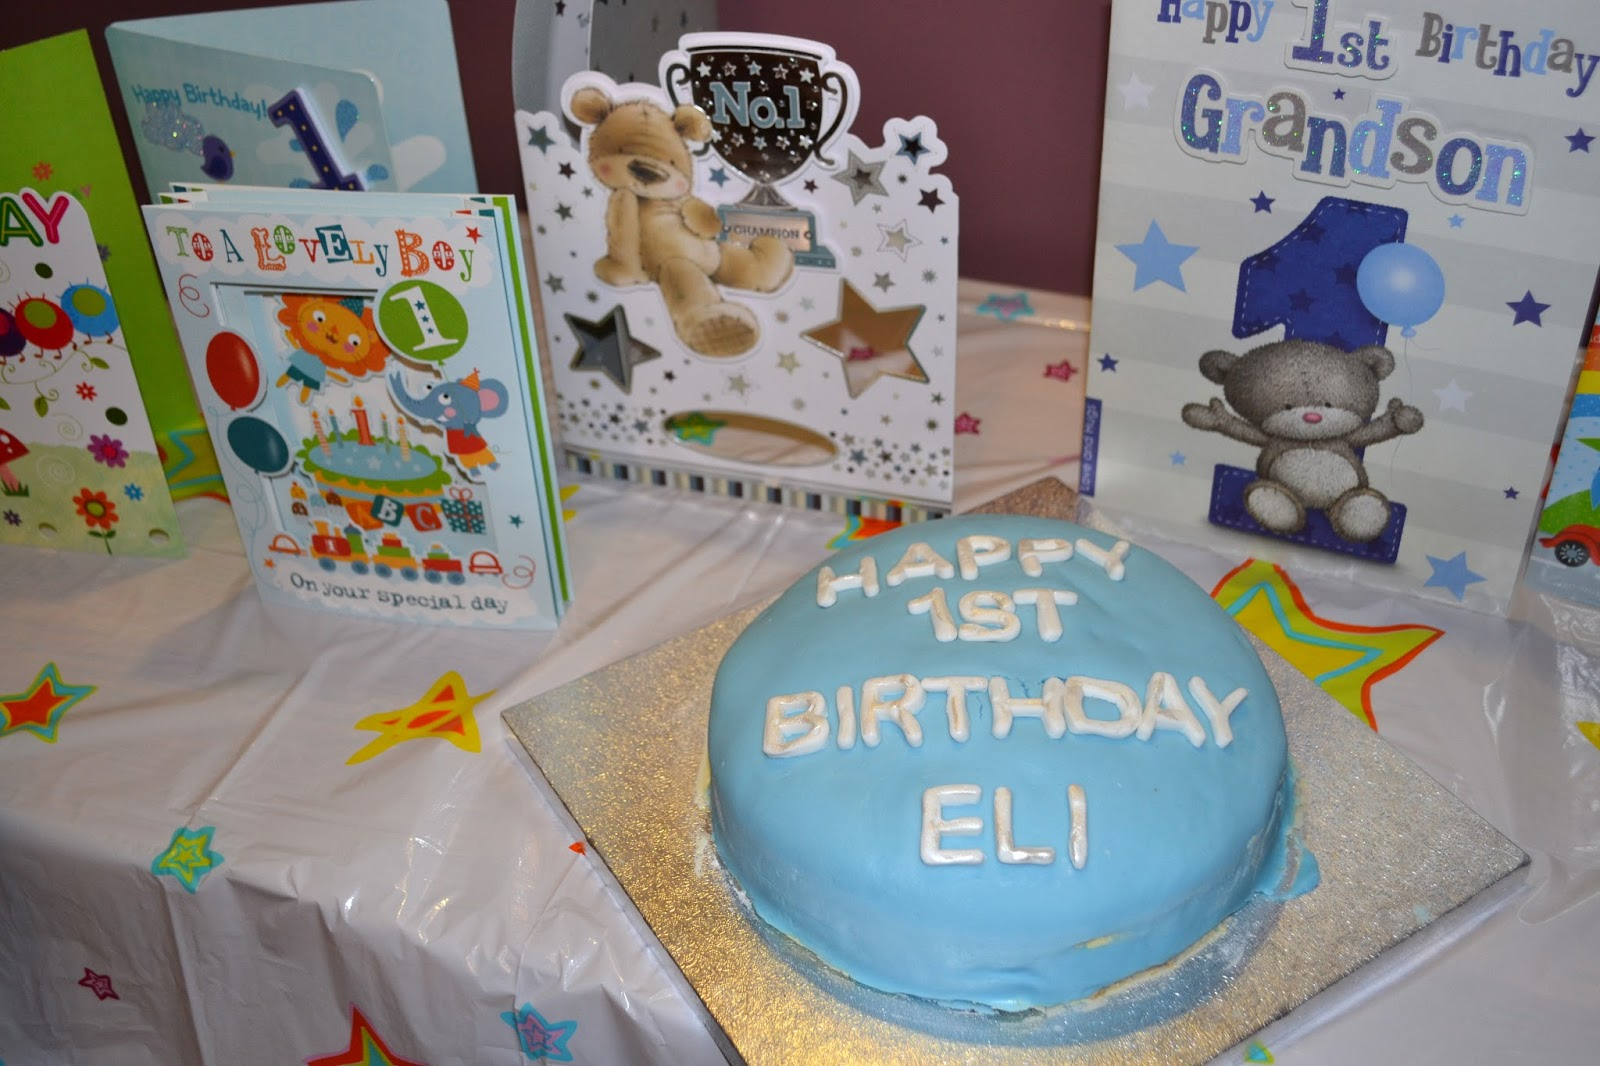 1st birthday cake and cards